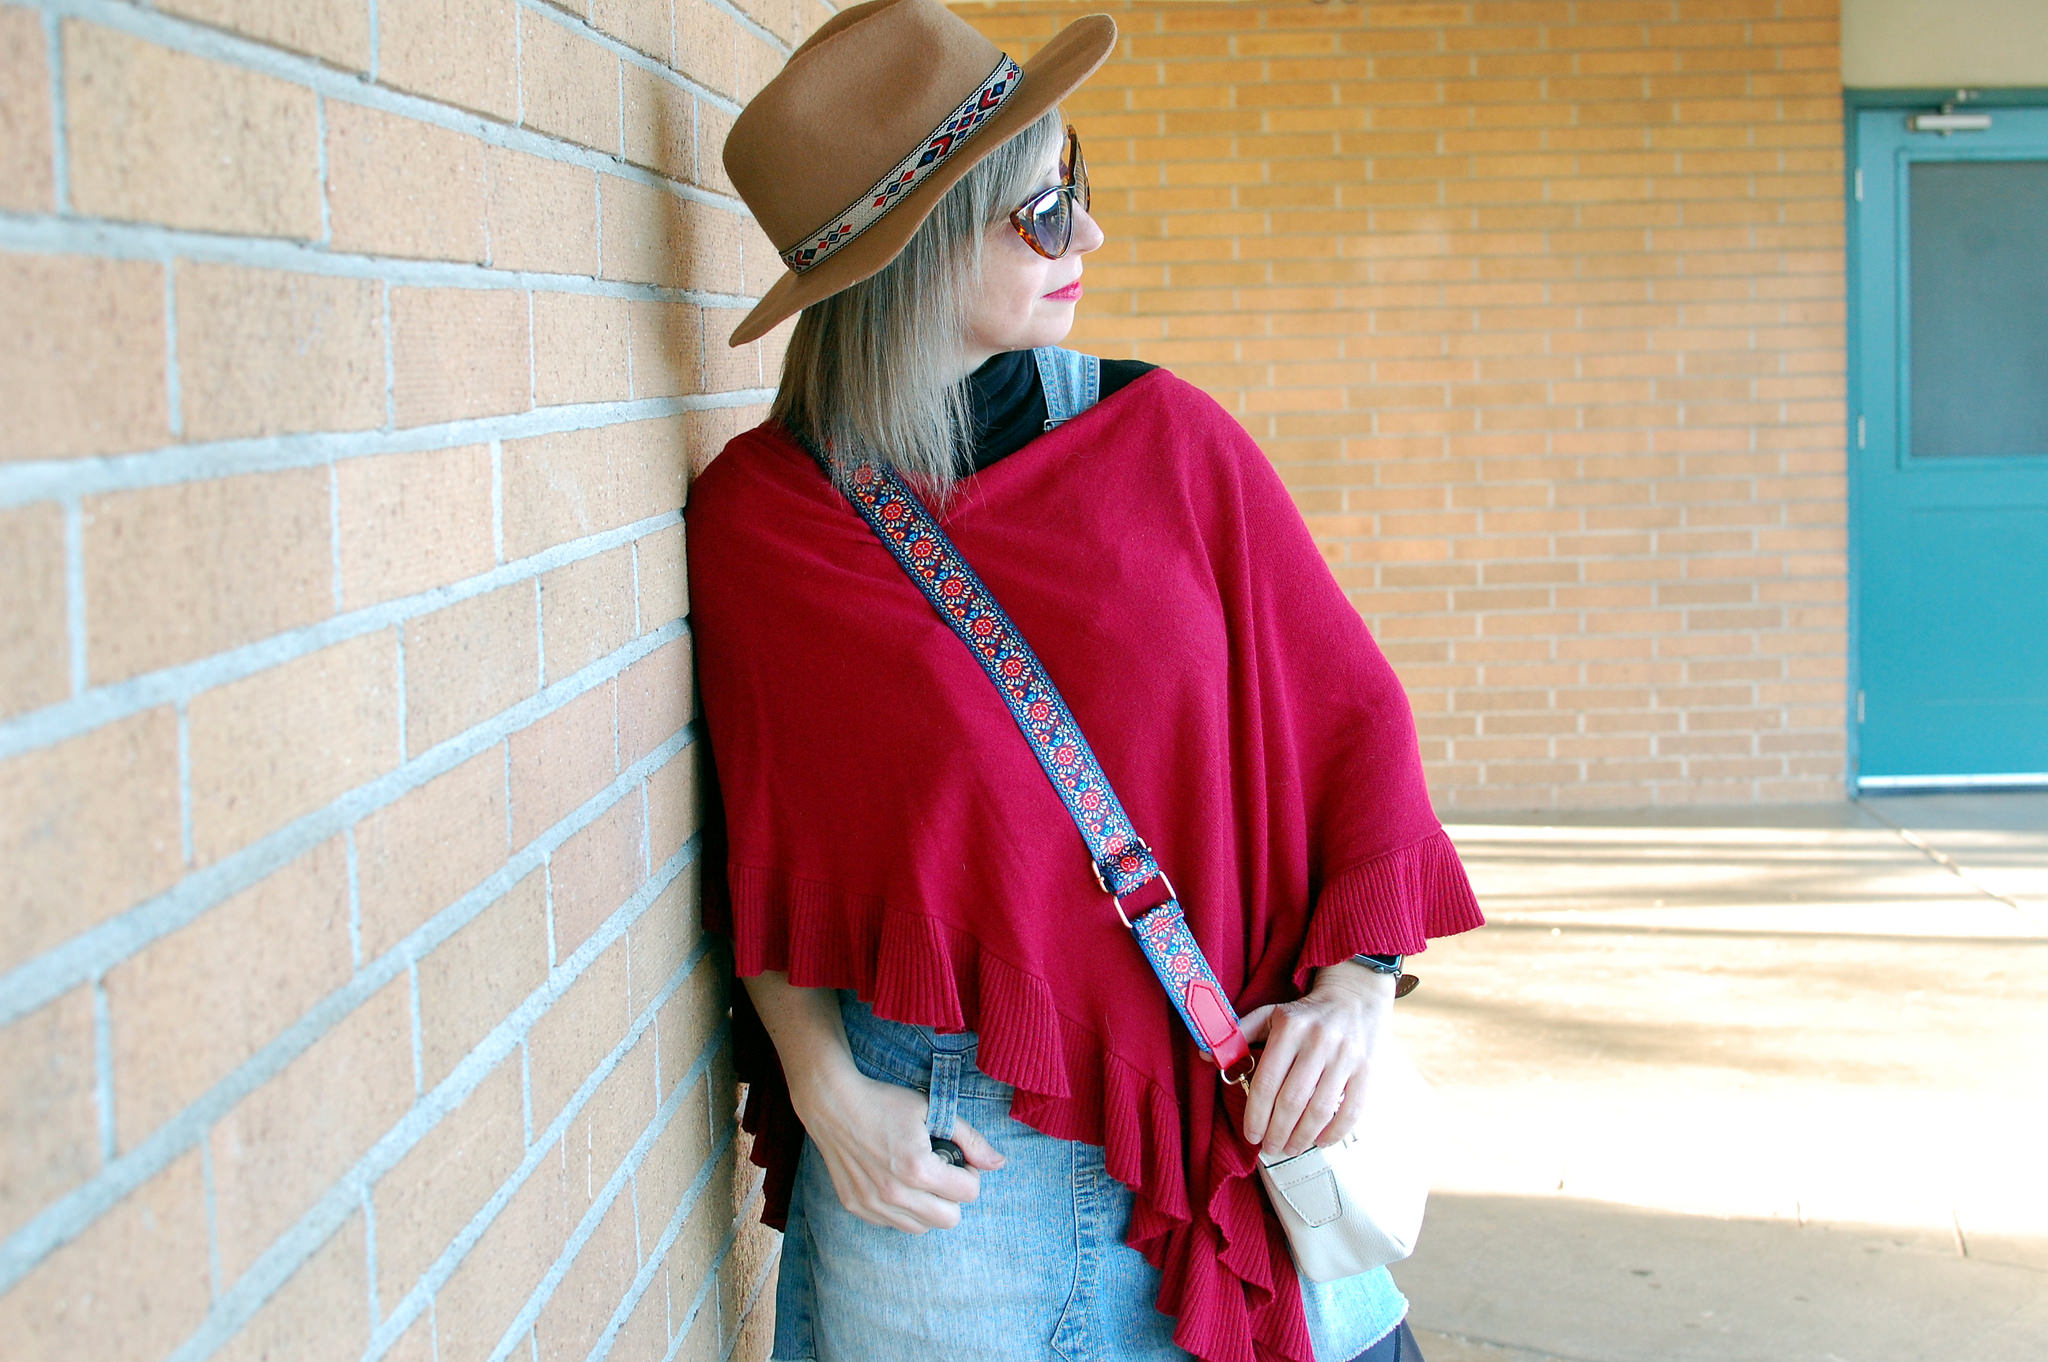 poncho hat western ootd whatiwore2day daily outfit blog